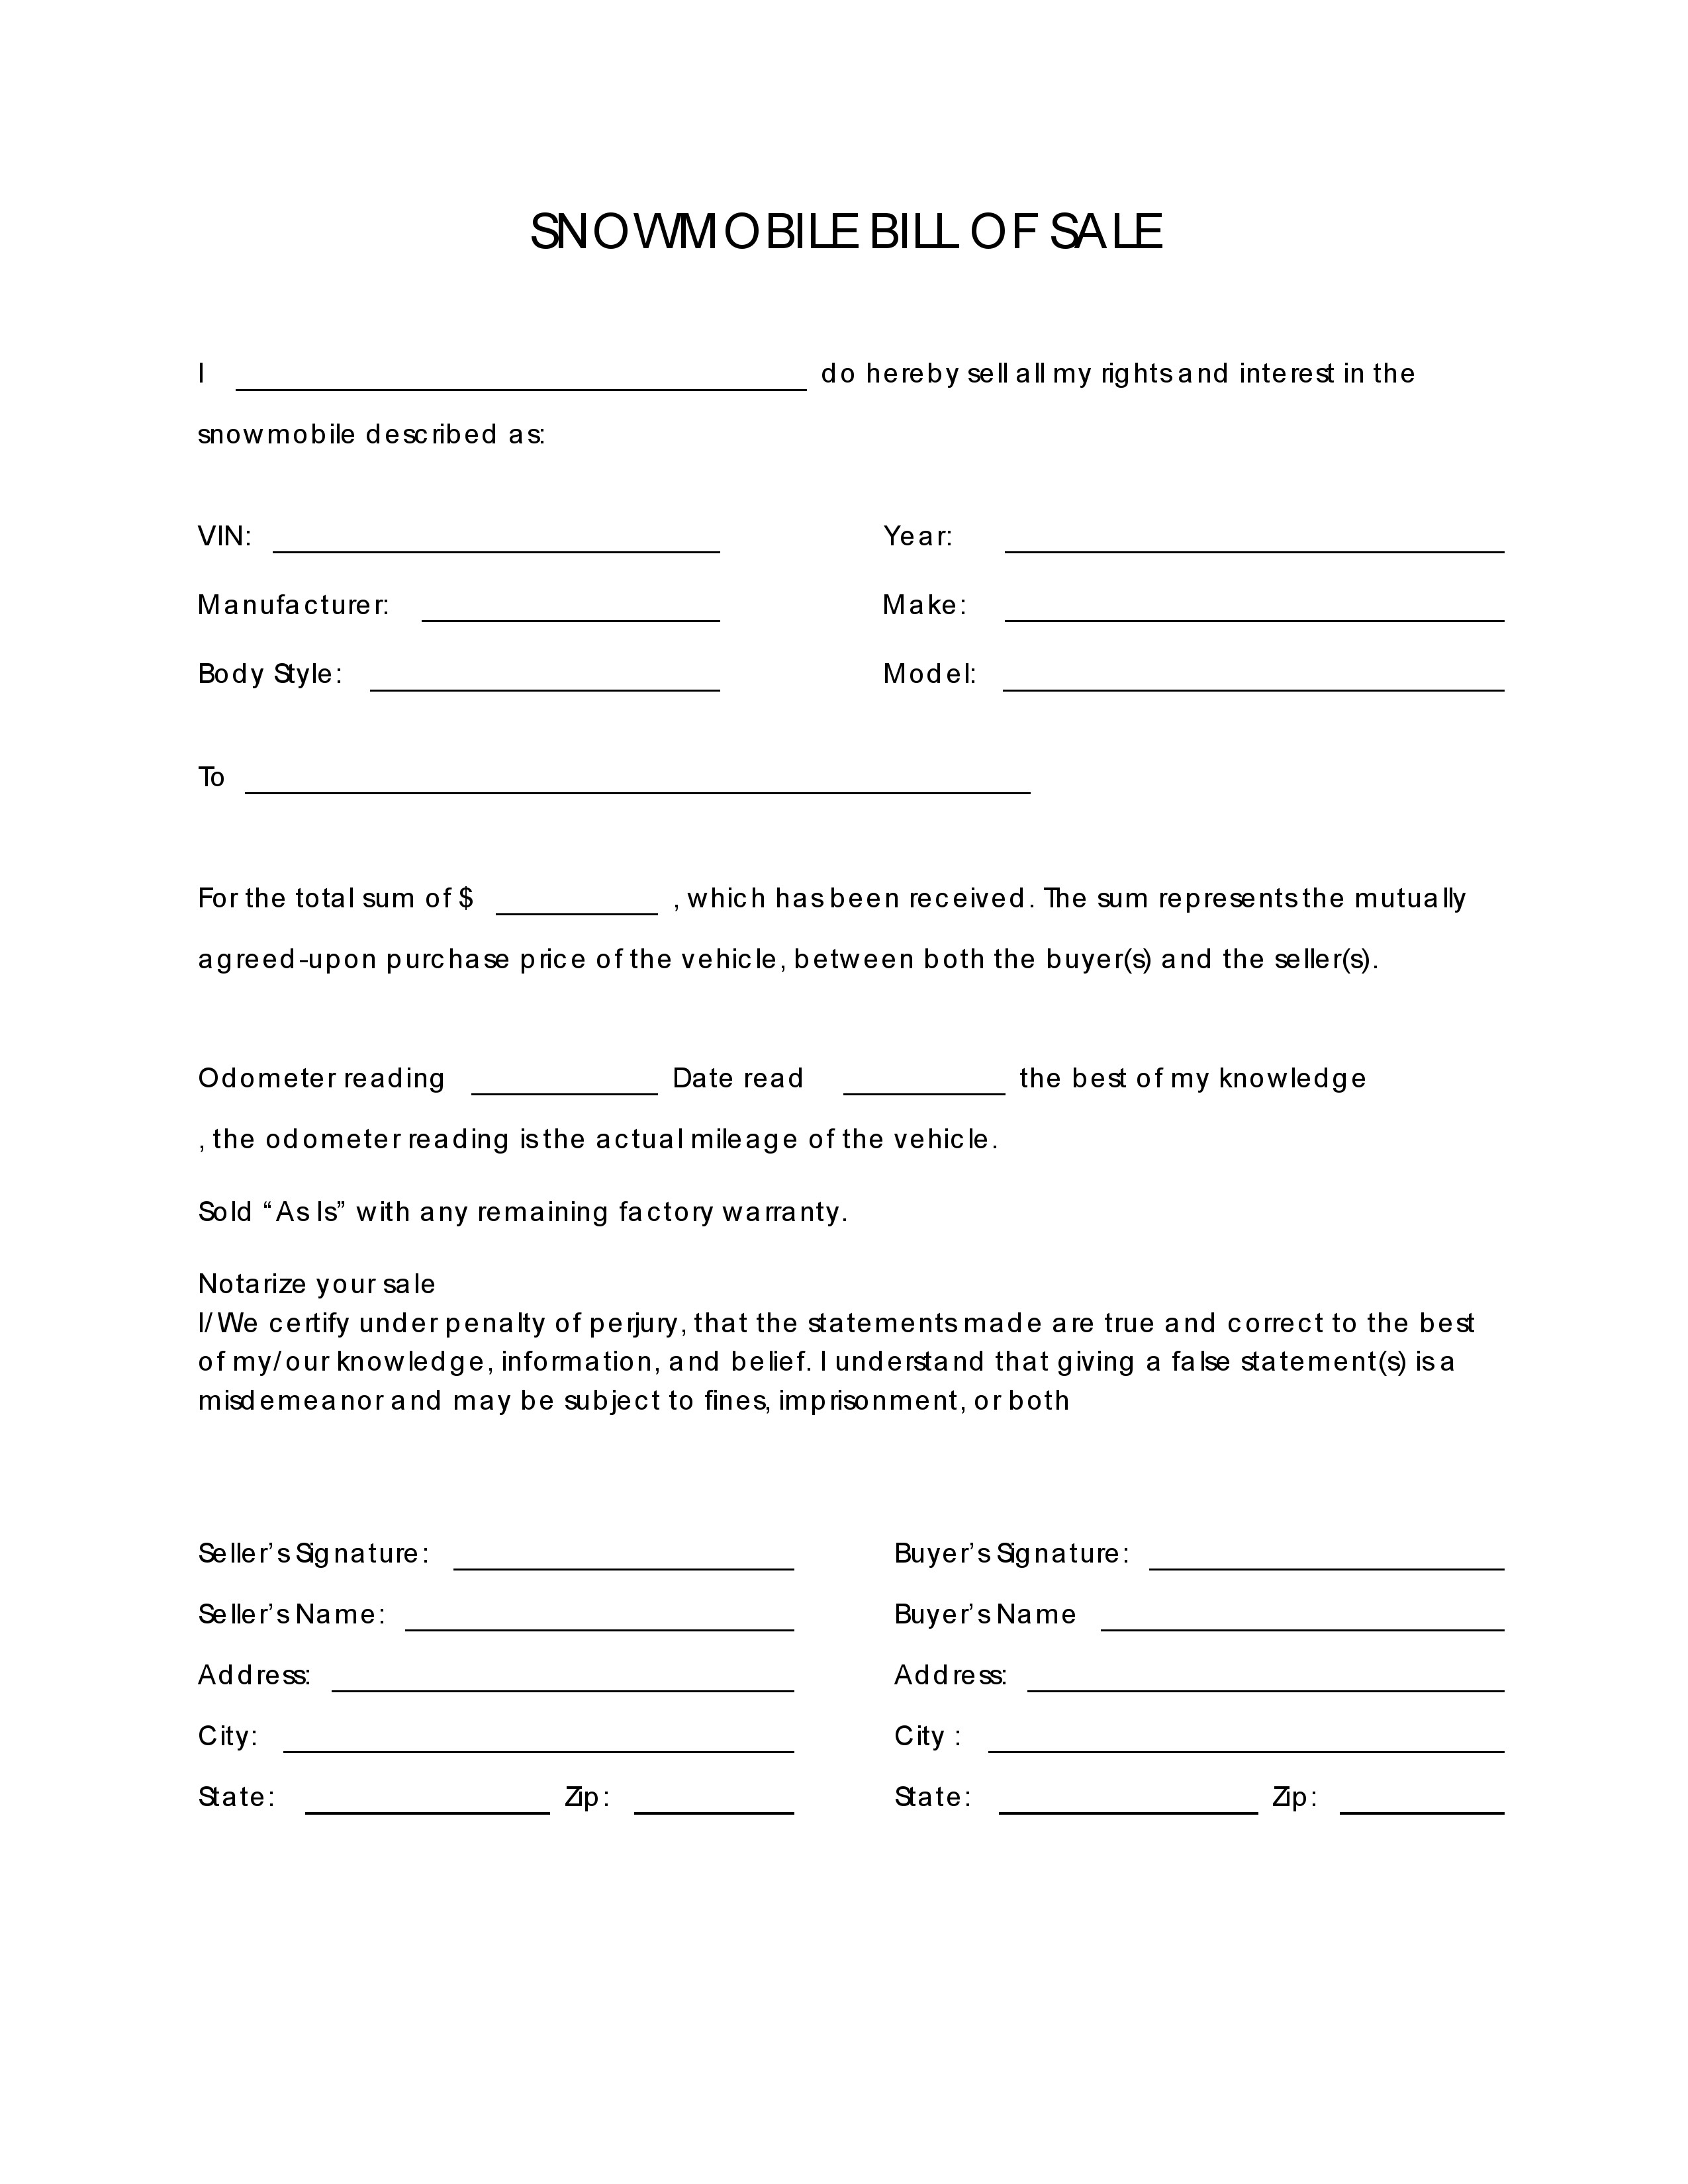 Free Snowmobile Bill Of Sale Form Pdf Word Do It Yourself Forms